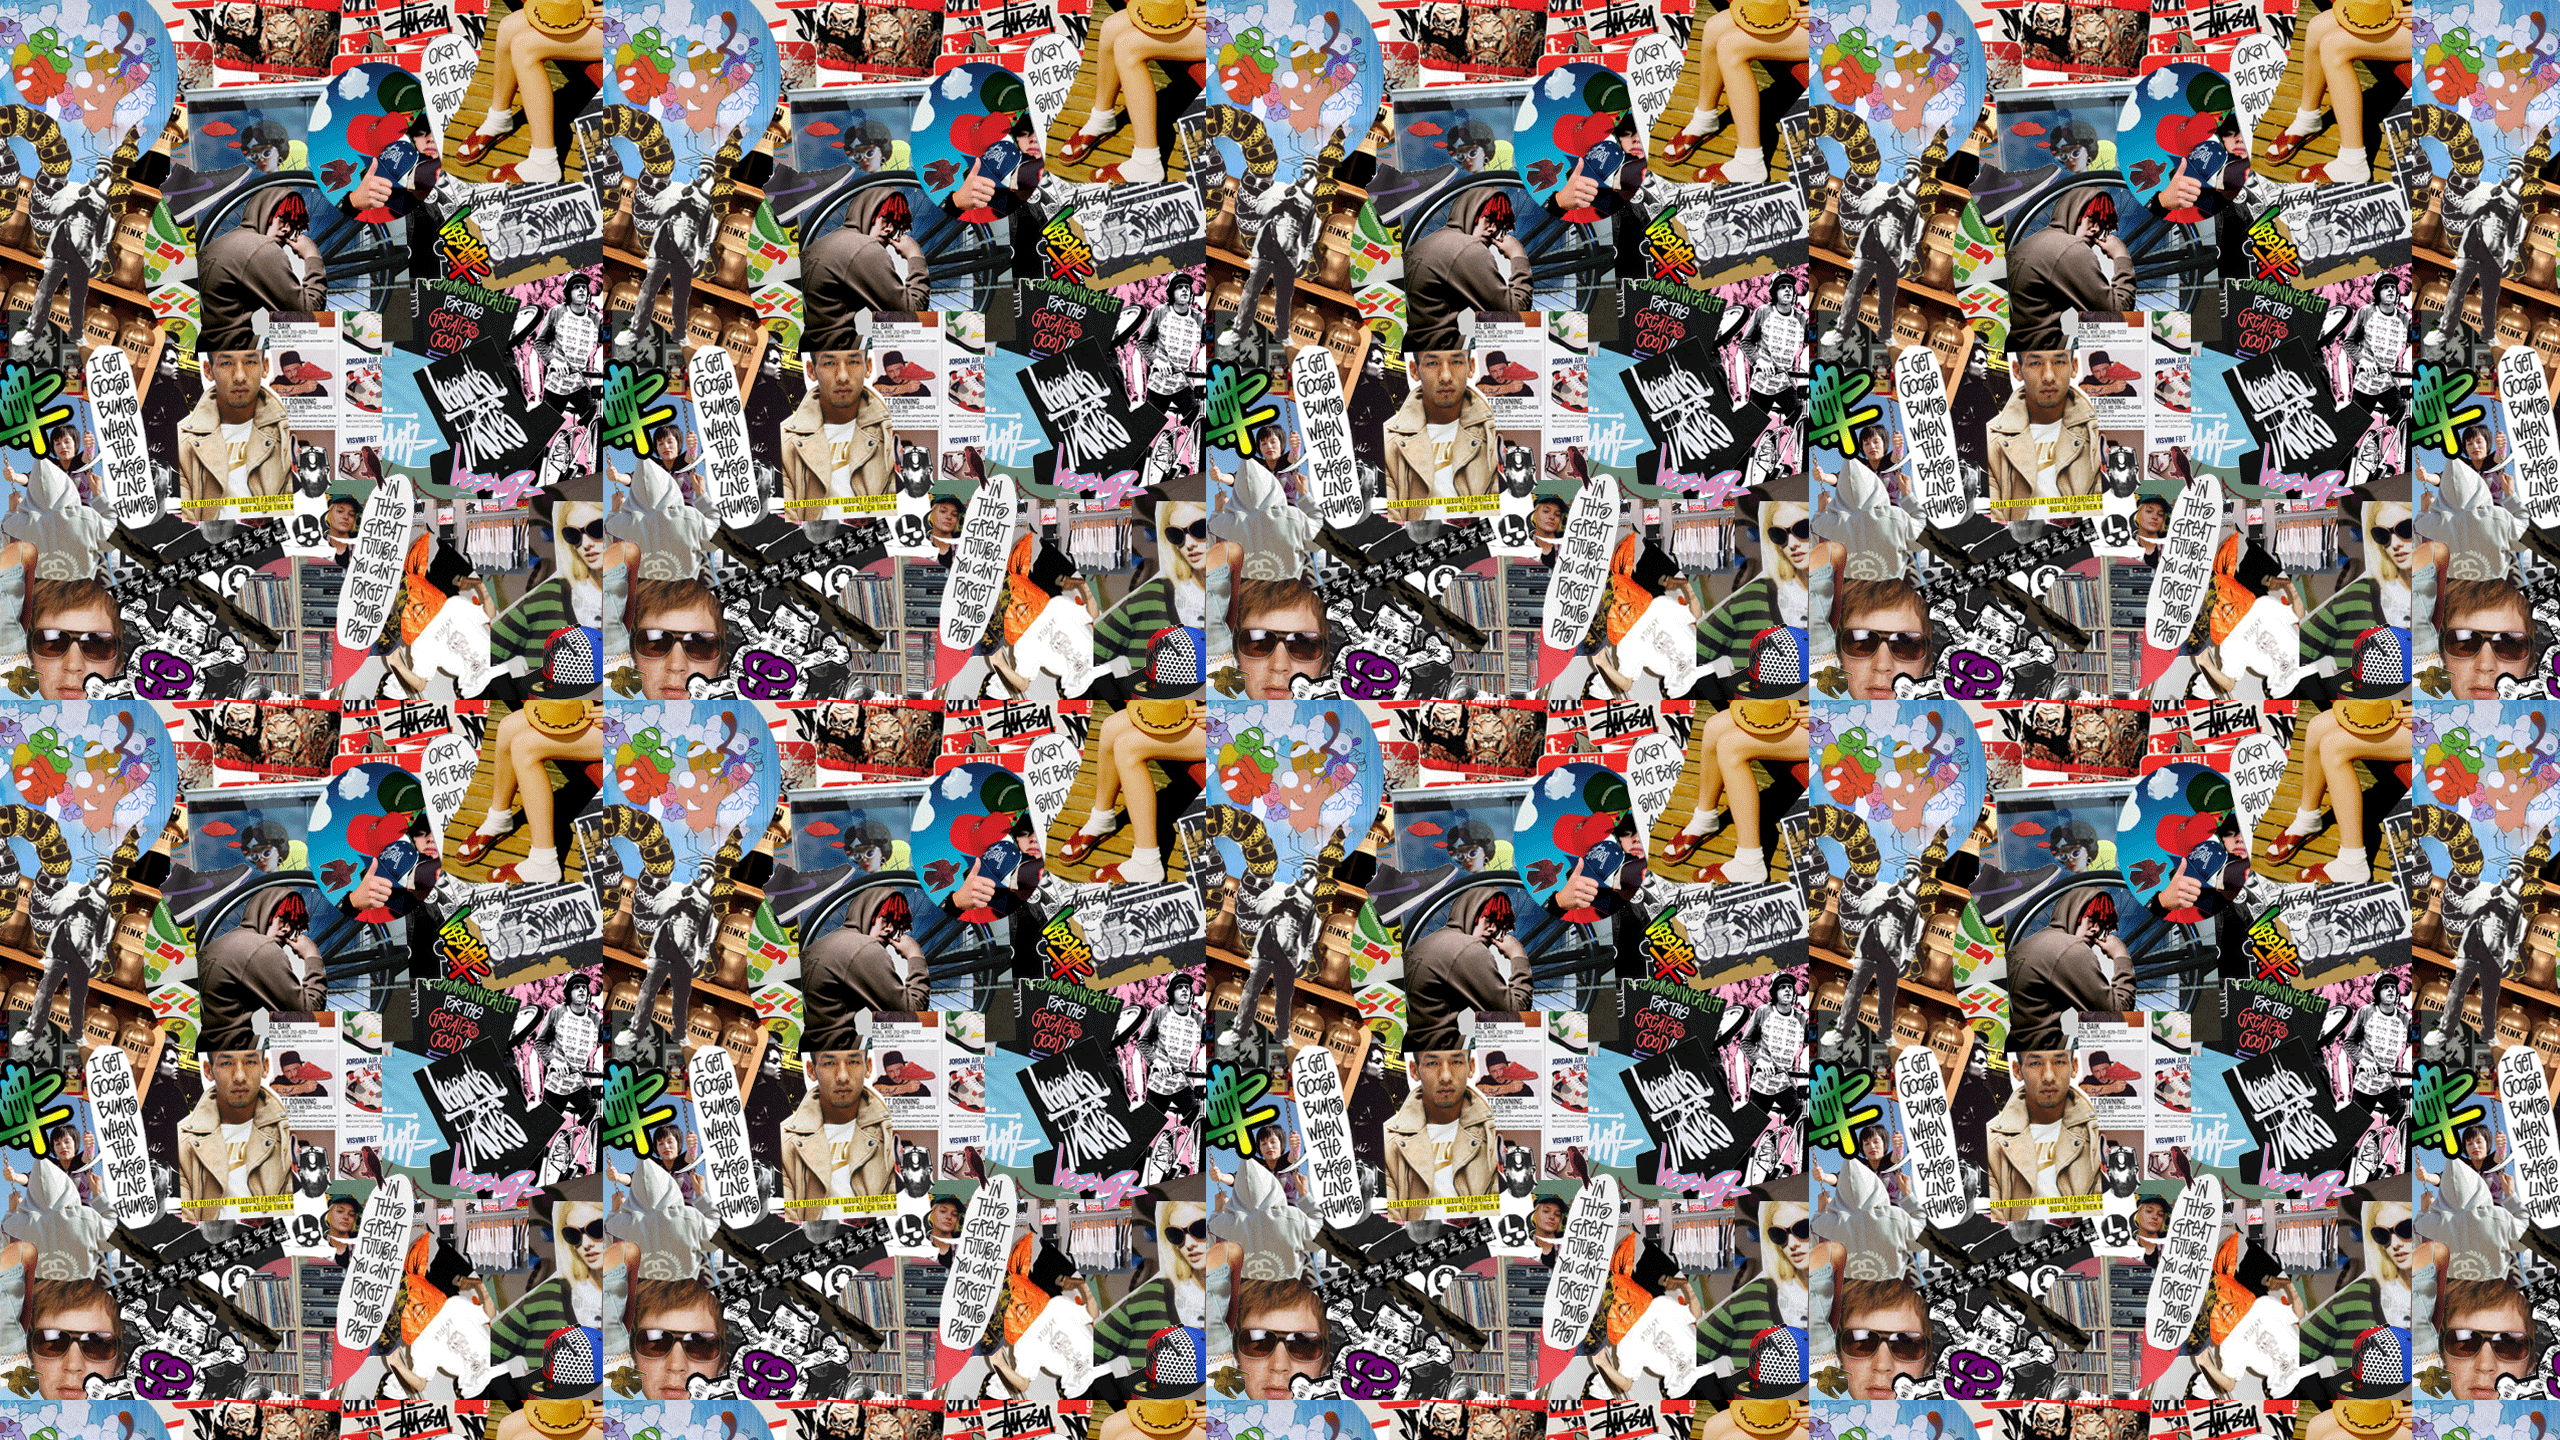 In The 80s Baby Desktop Wallpaper is easy Just save the wallpaper 2560x1440